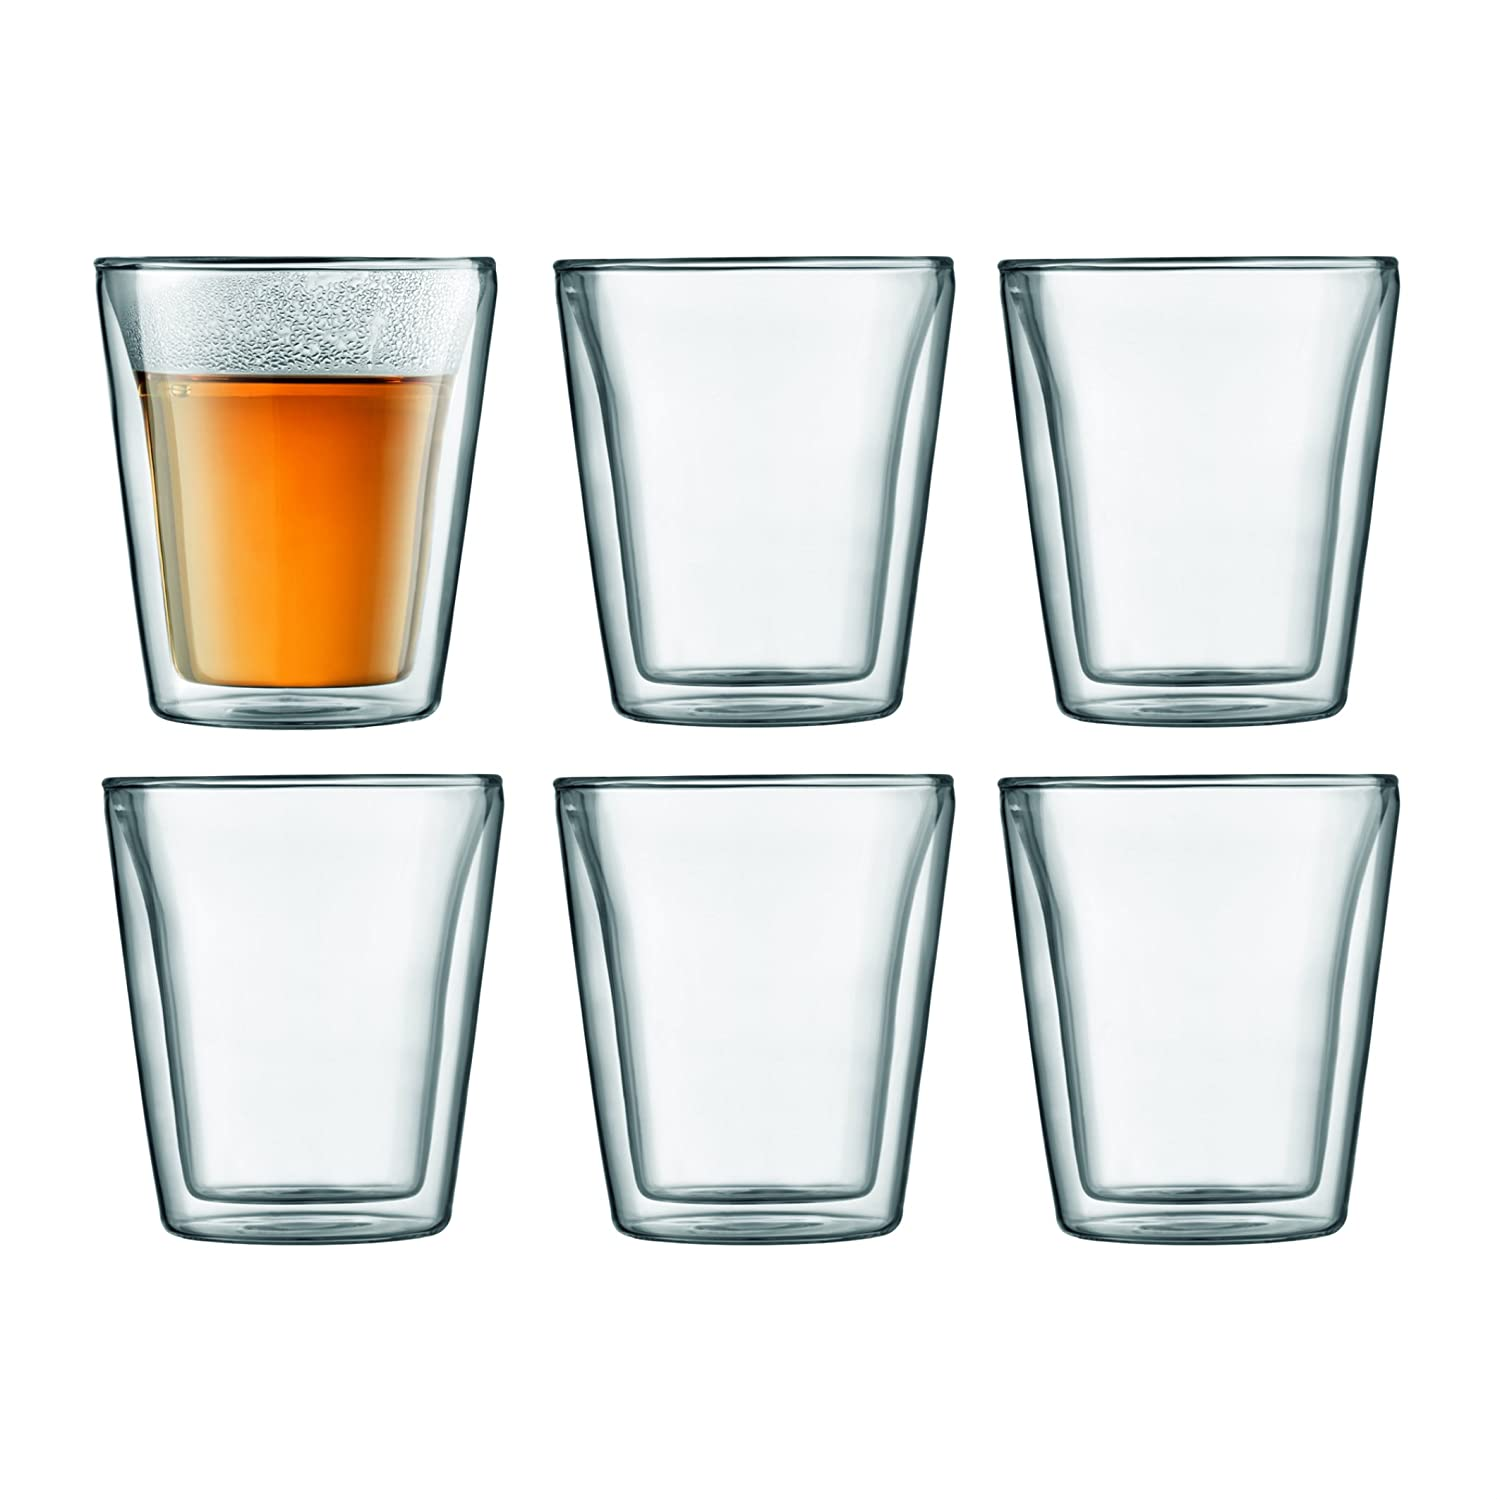 BODUM Canteen Double Wall Glass Set, Mouth Blown Borosilicate Glass - 0.1 L, Transparent, Pack of 2 10108-10US 3 oz Double walled Drinksware